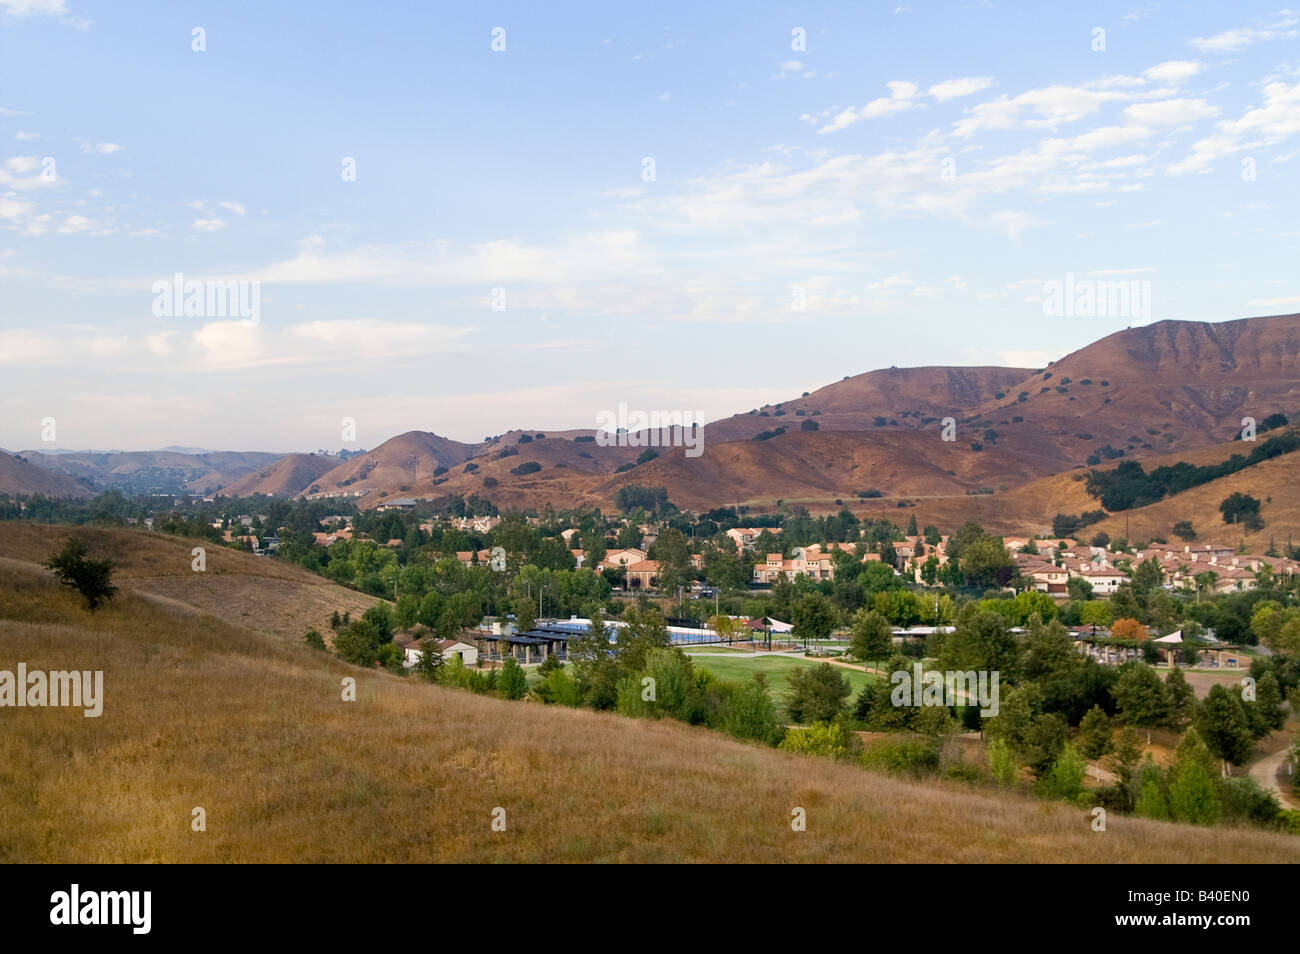 Calabasas a suburb located in Los Angeles country houses many parks and trails - Stock Image